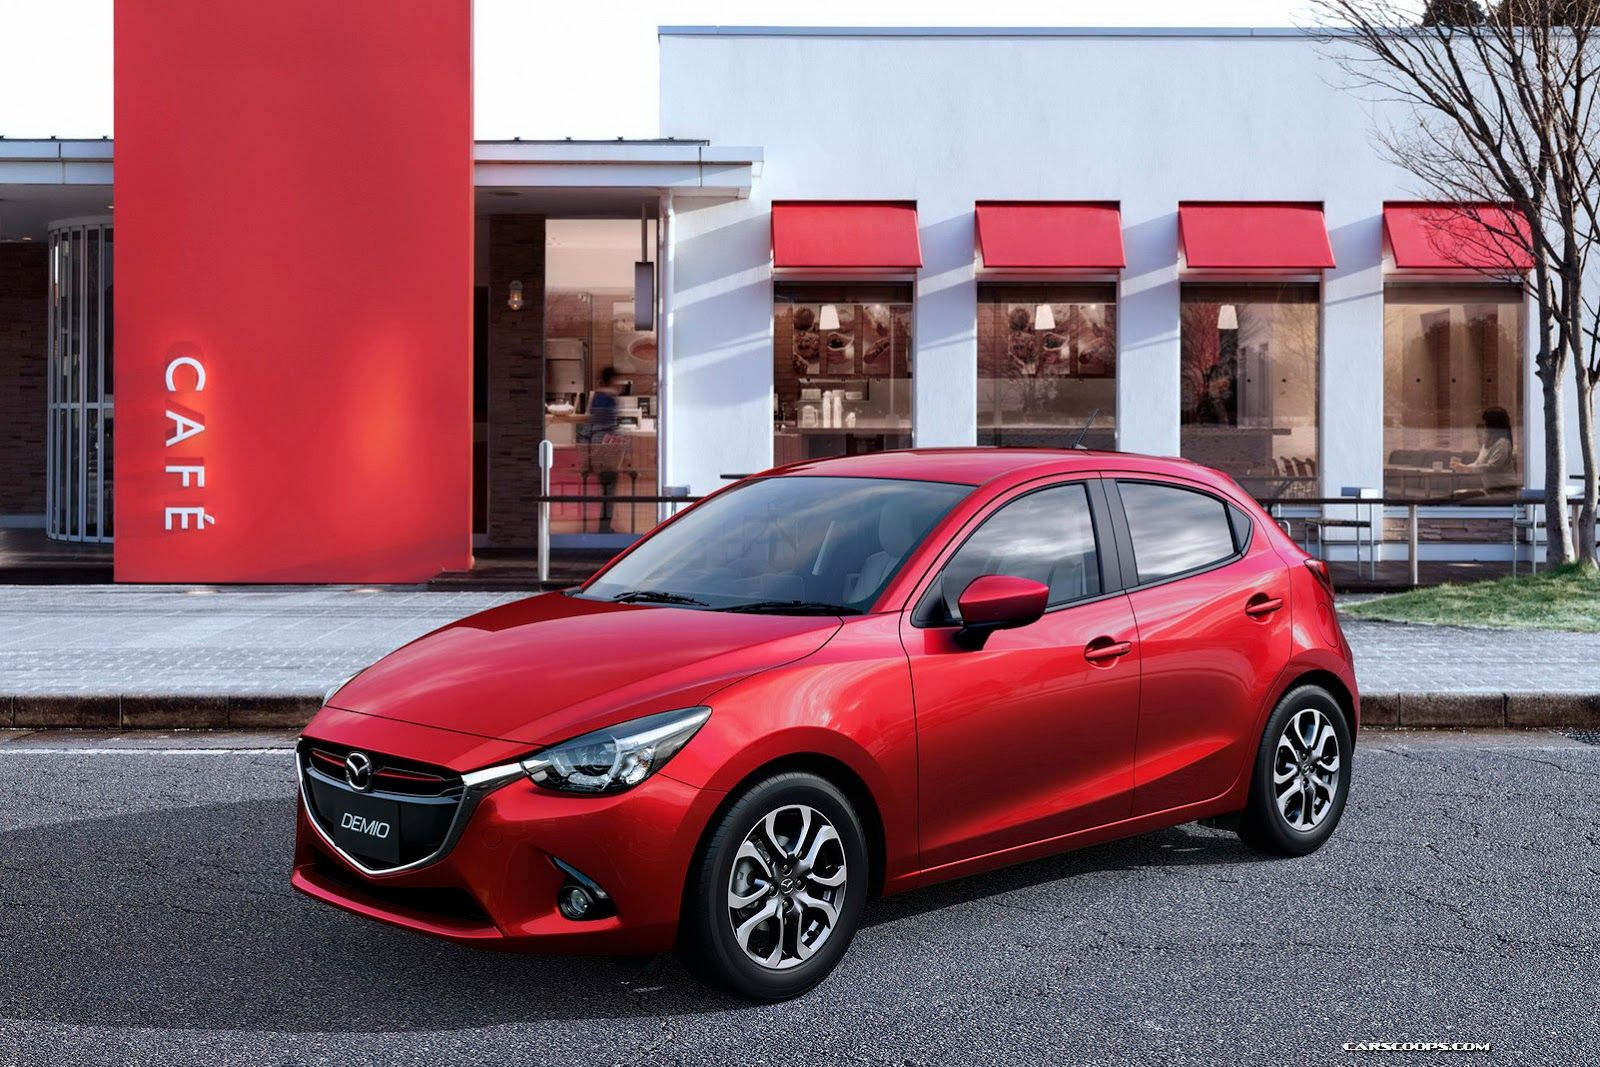 New 2015 Mazda2 Officially Breaks Cover 75 Photos Videos